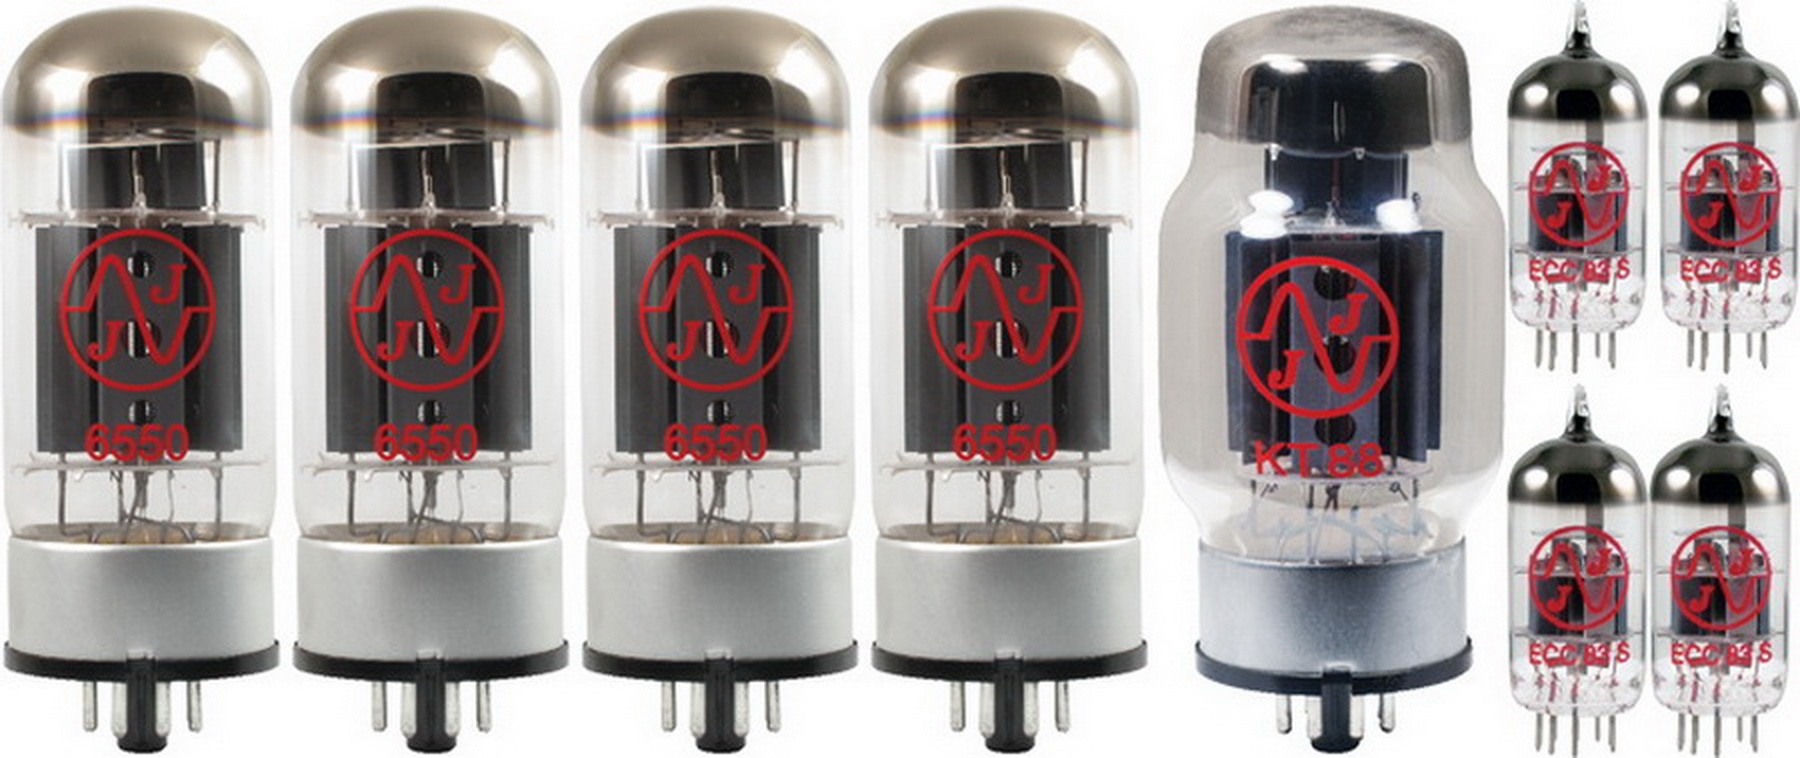 Tube Complement for Groove Tubes D-75 Studio by